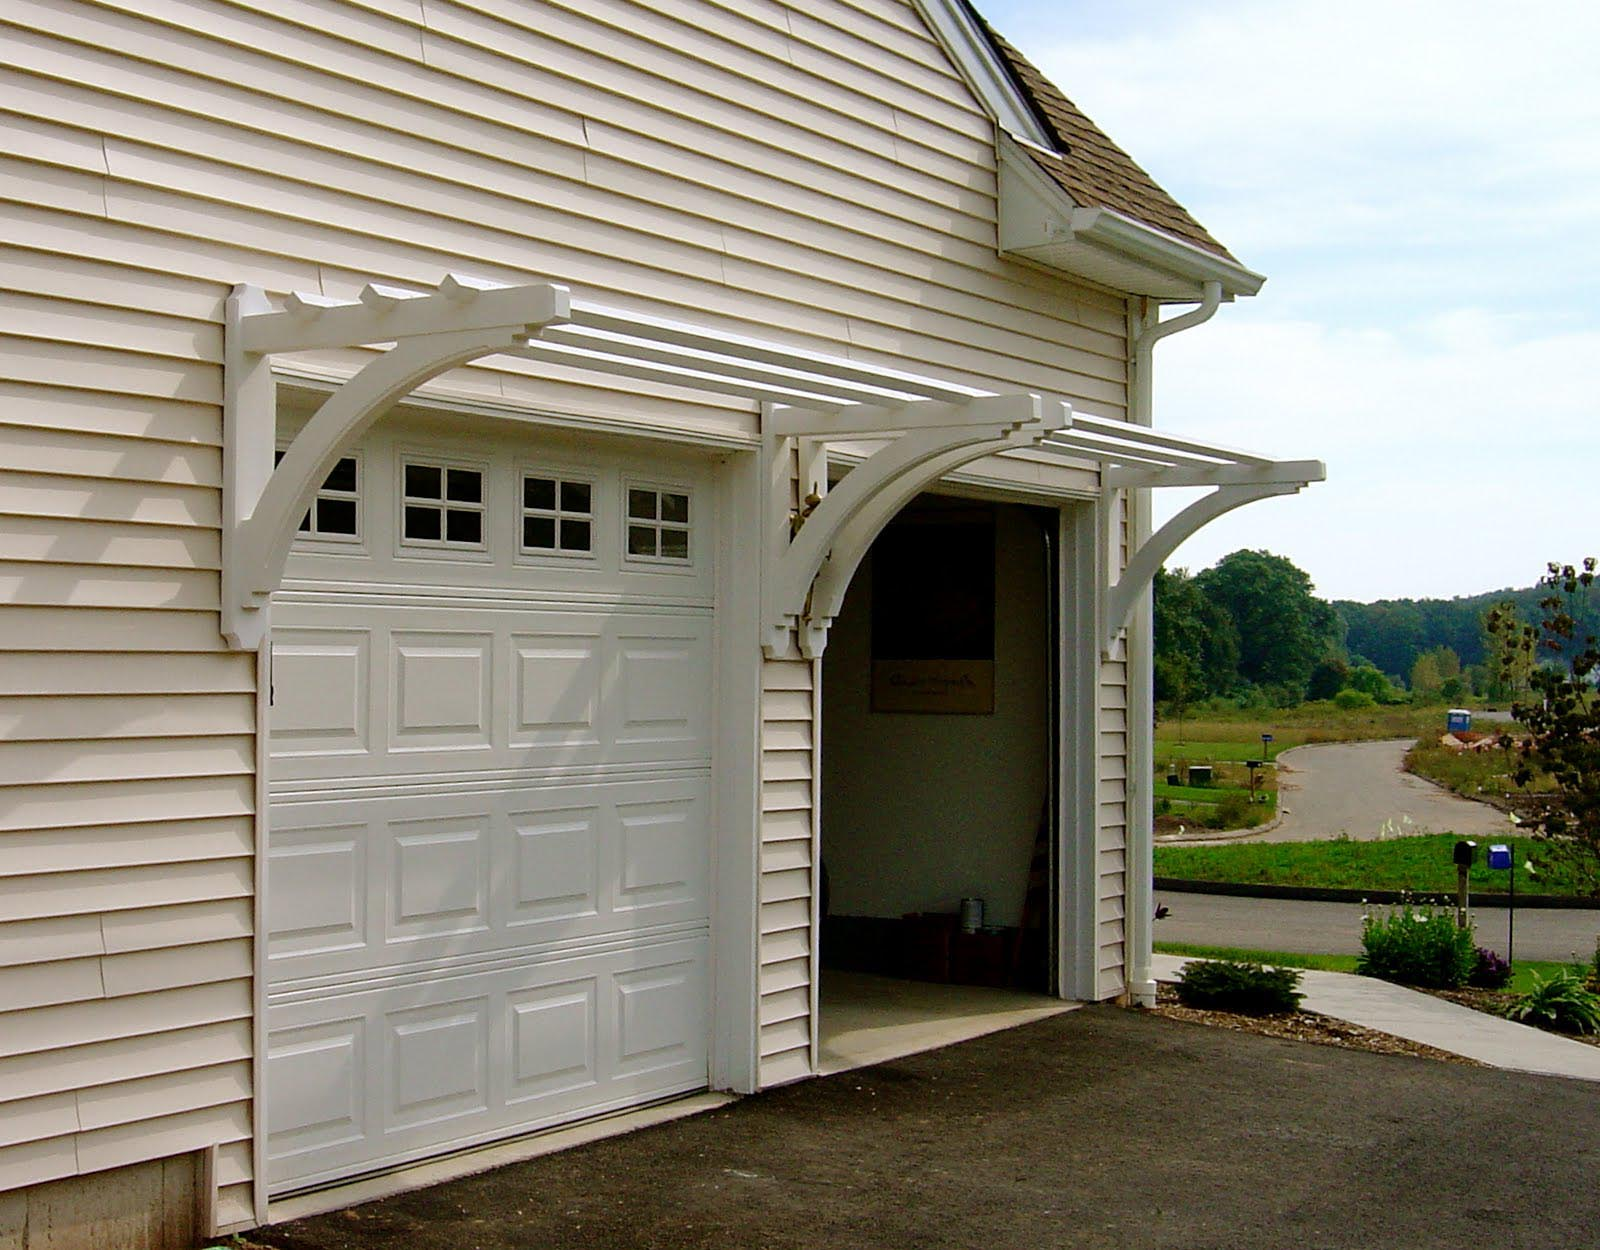 pergola over garage door kits pergola design ideas